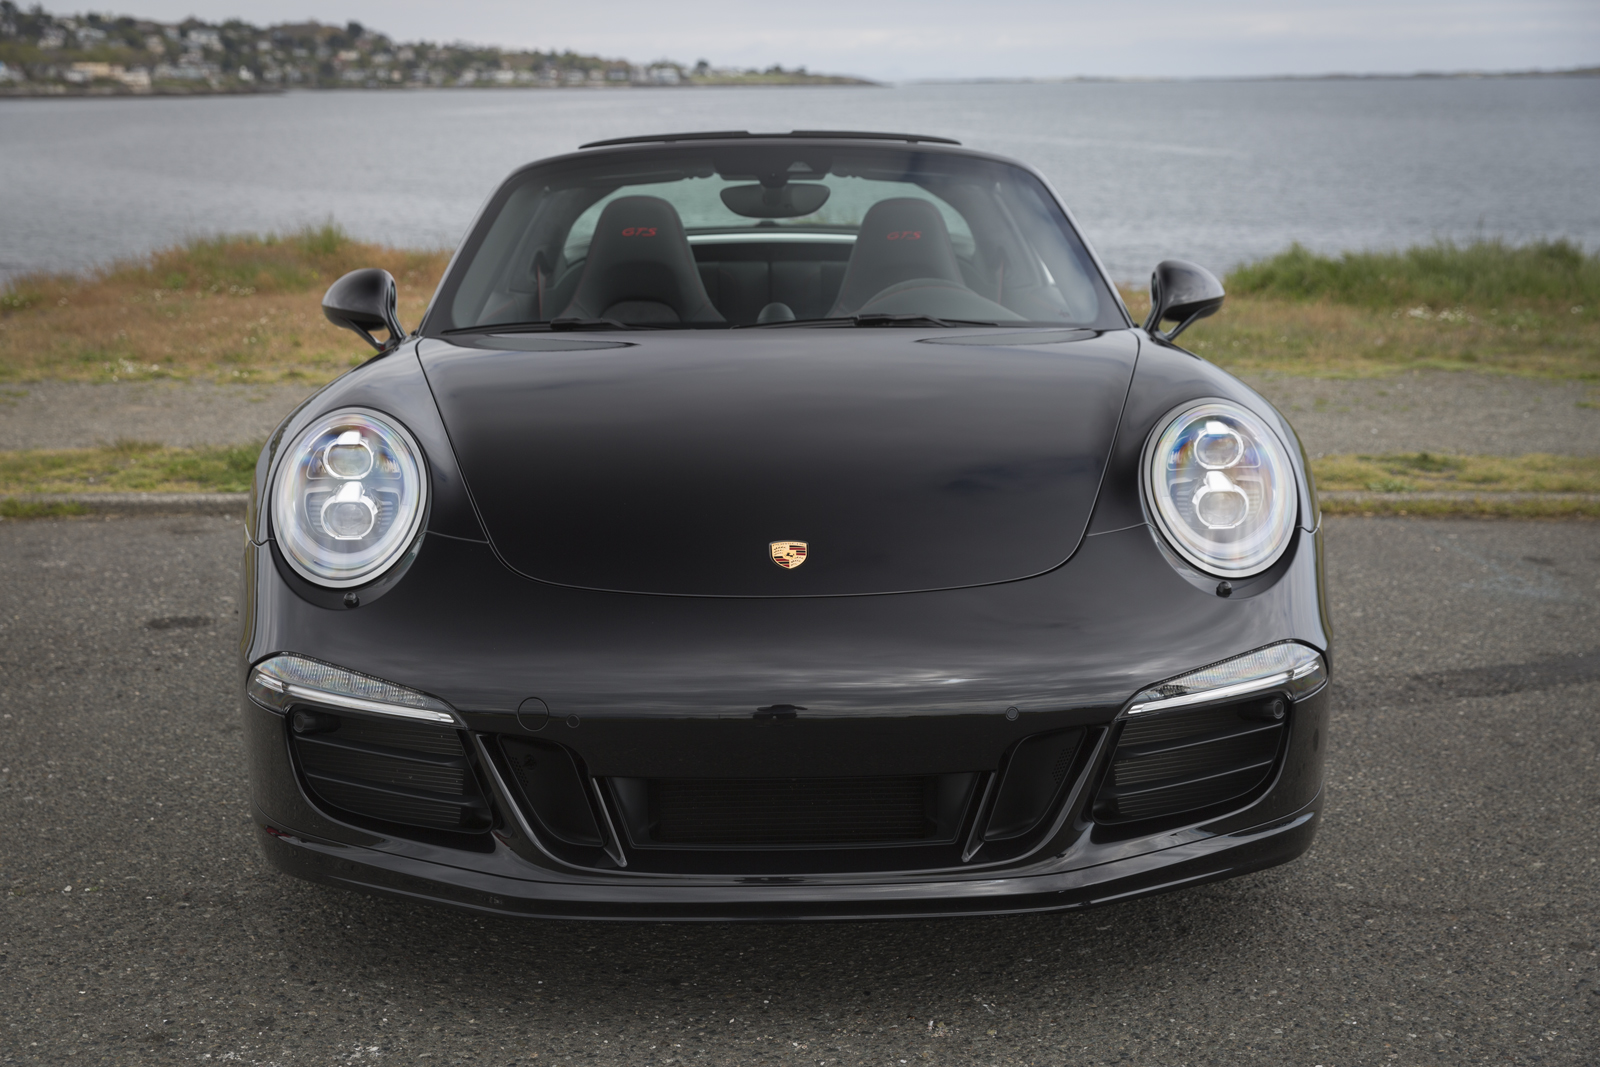 2016 Porsche 911 Targa 4 GTS Manual for sale